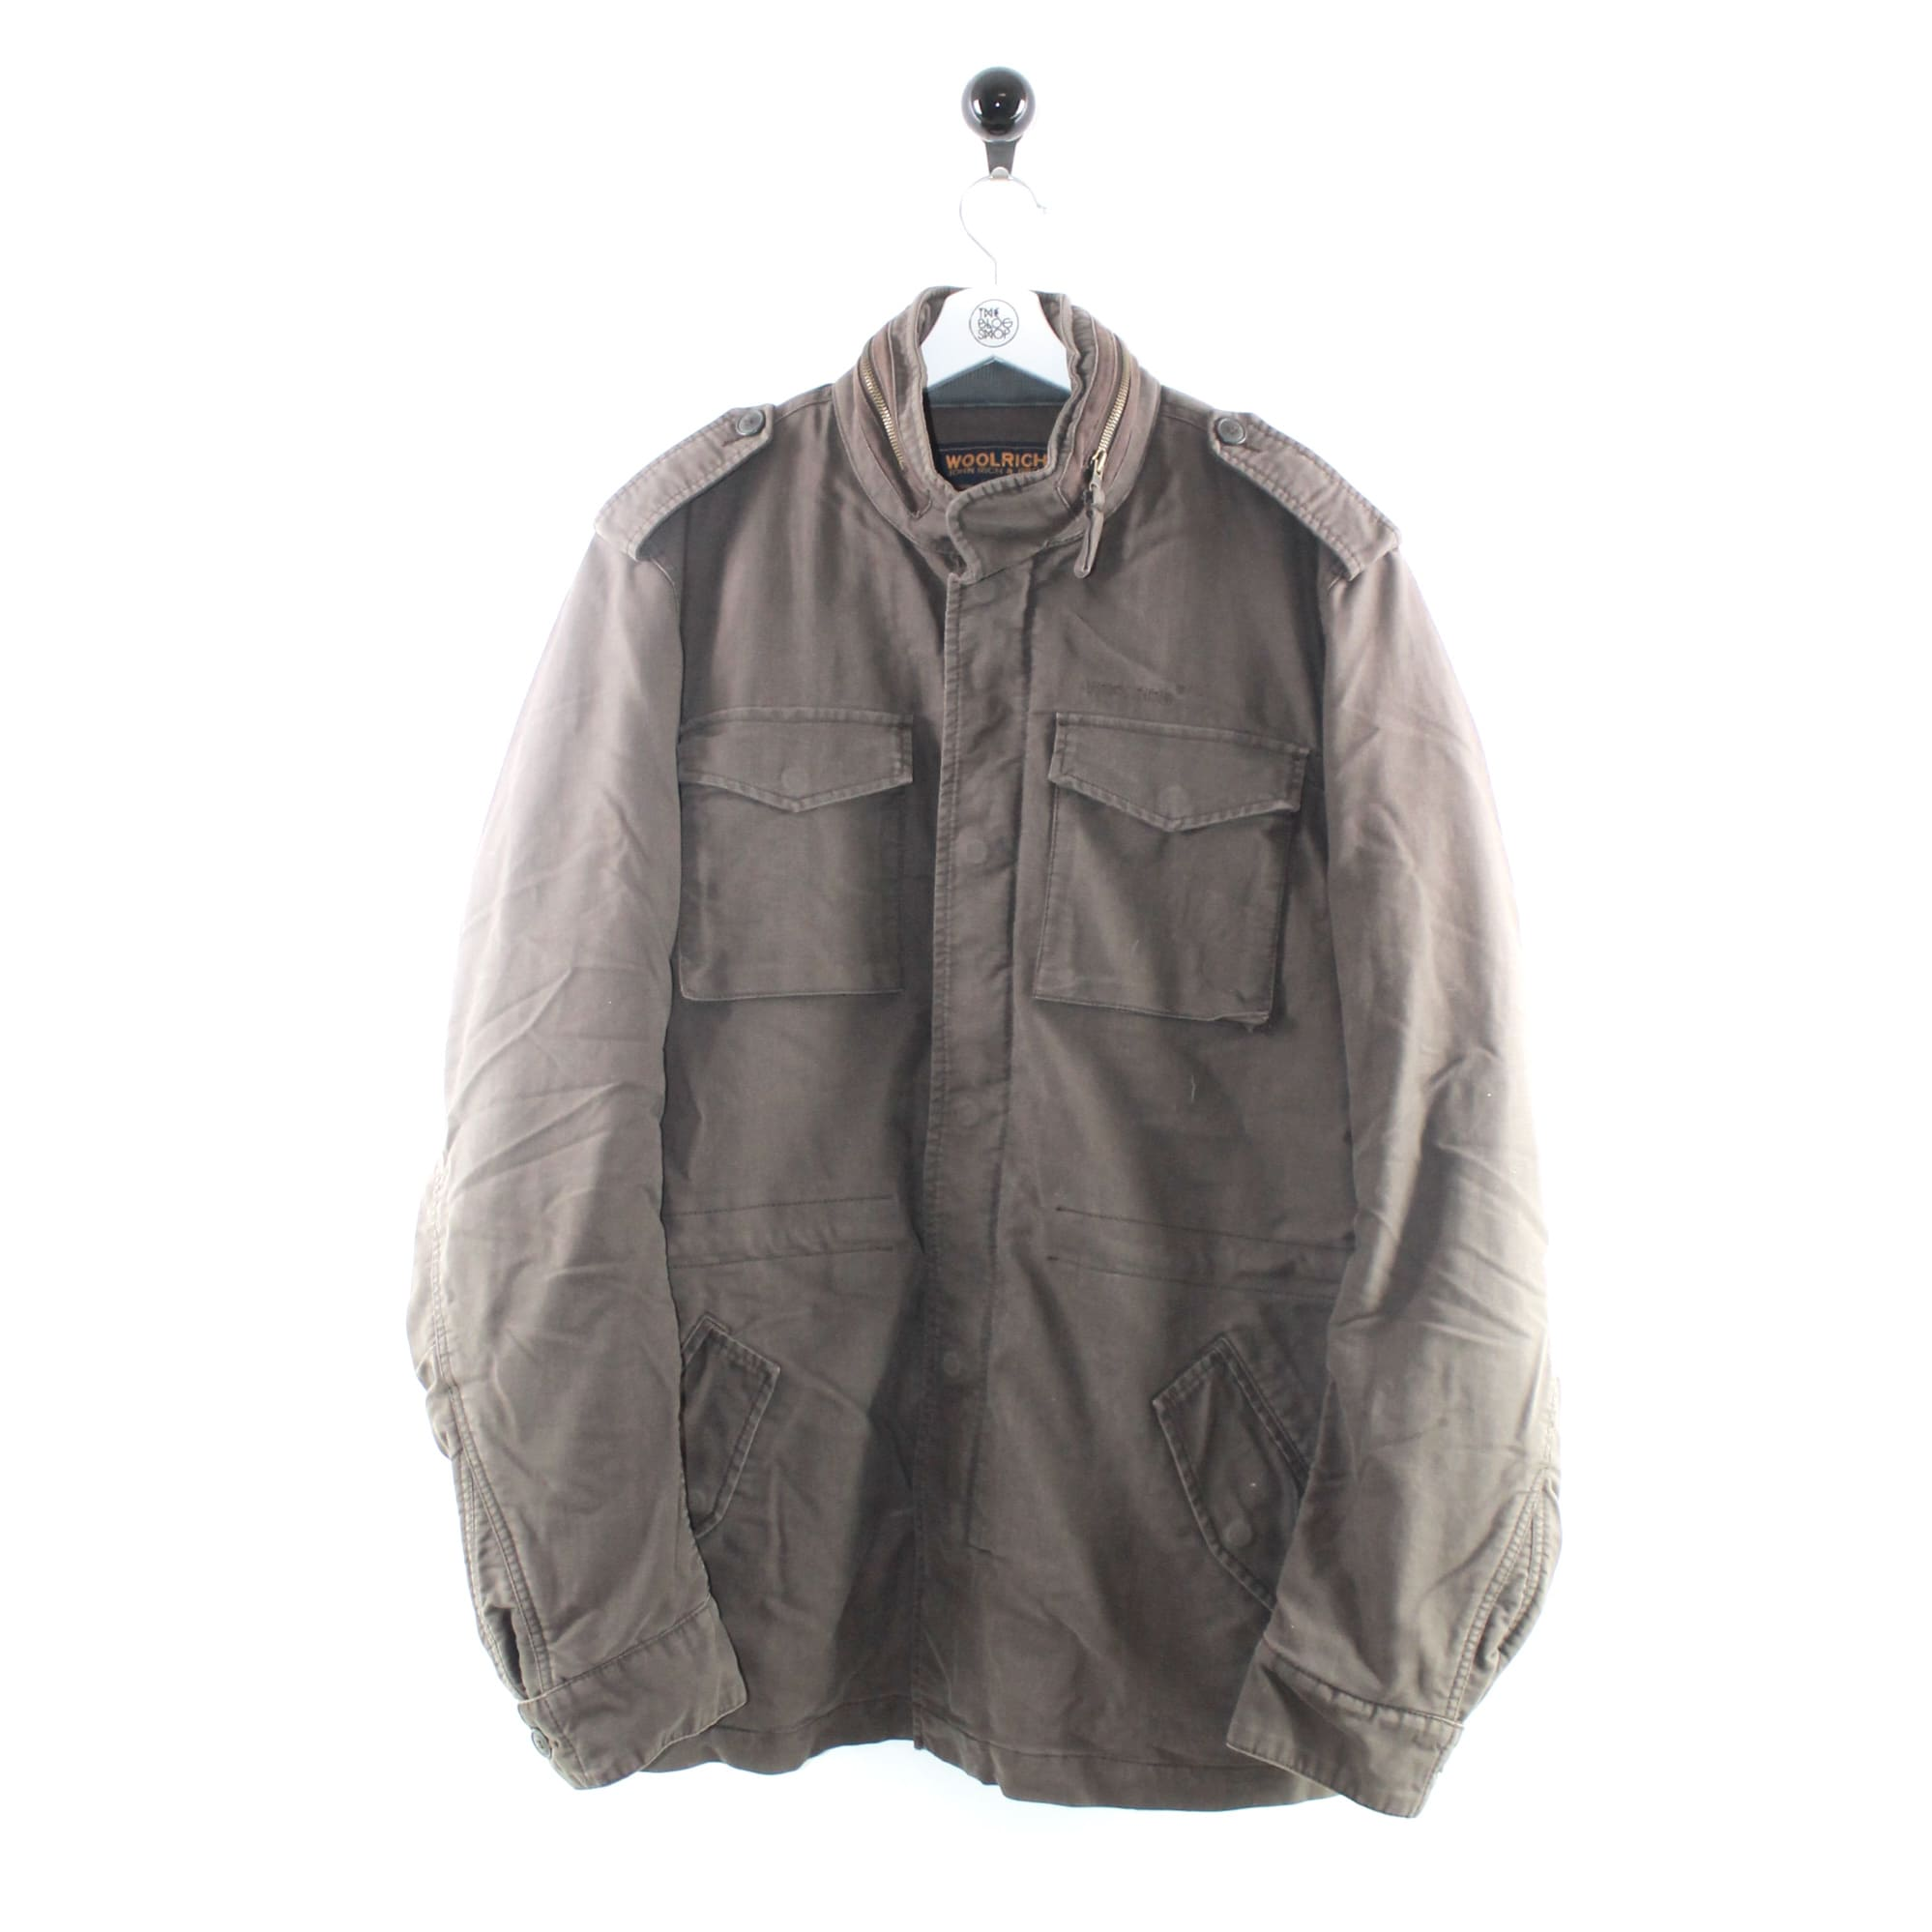 Woolrich - Giacca